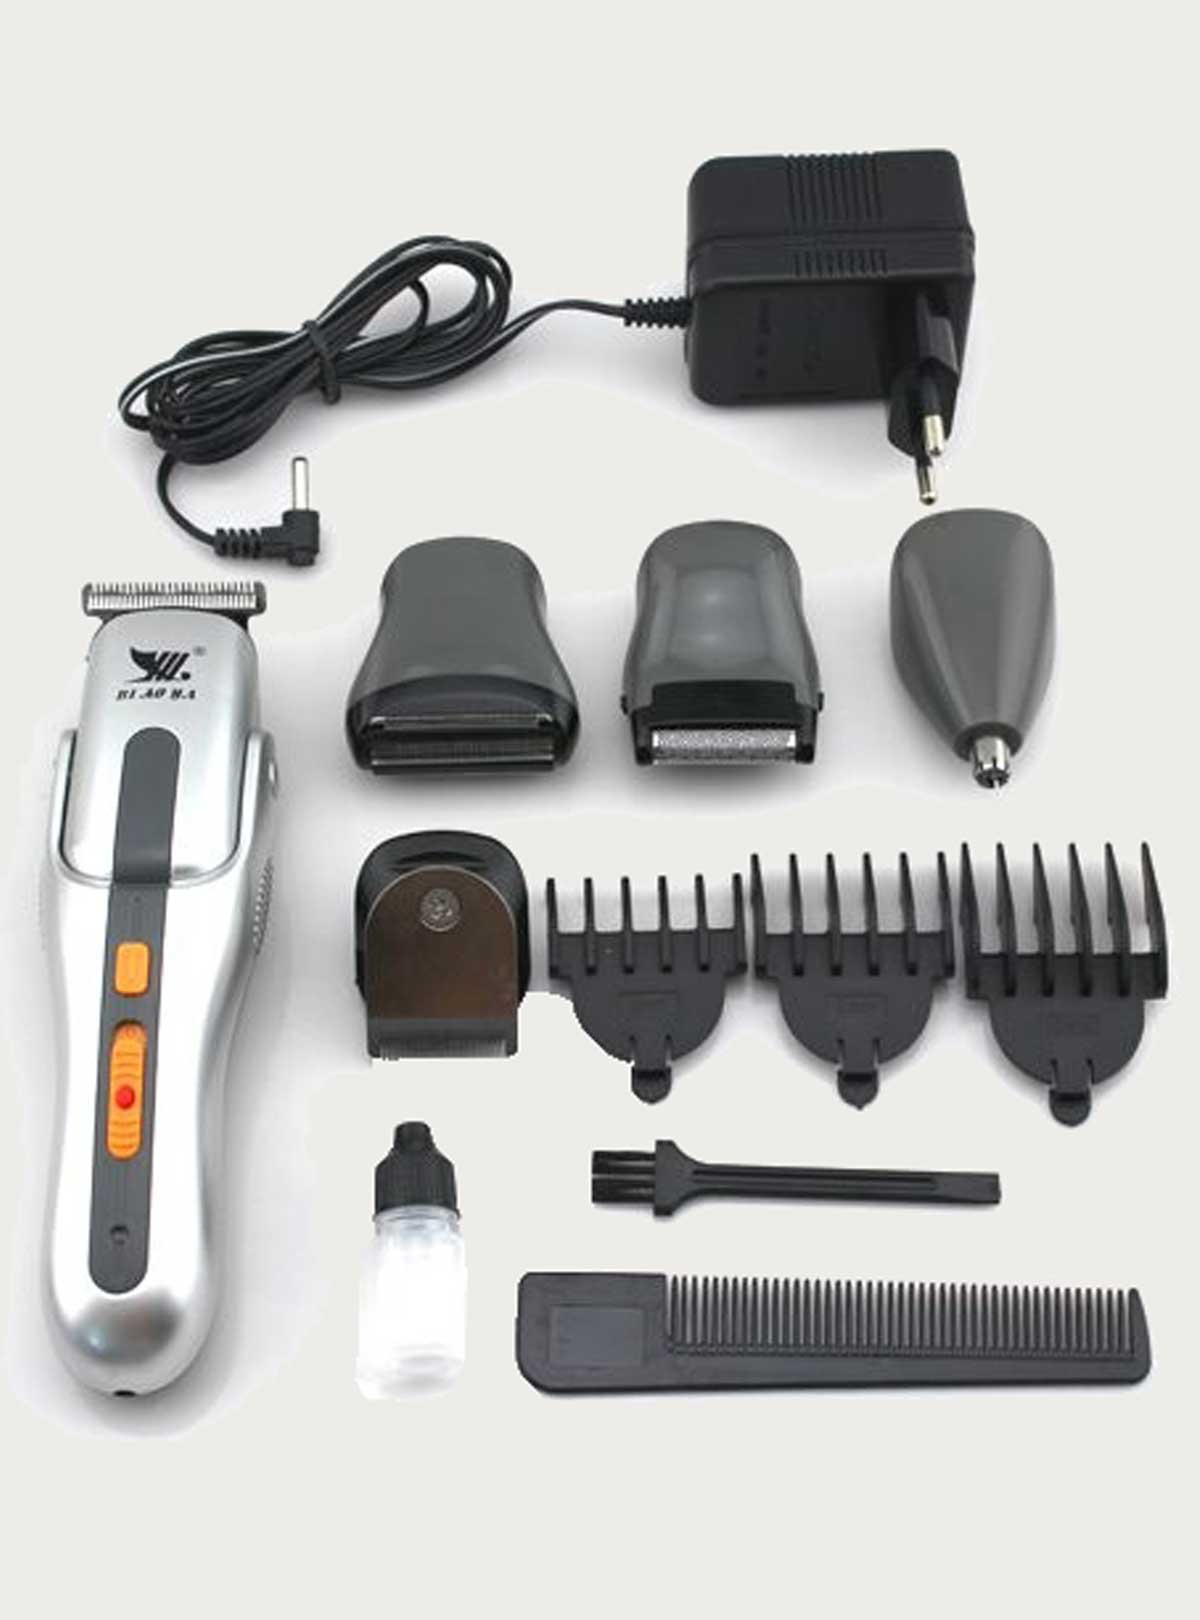 Kemei 8 in 1 Grooming Kit Shaver/Trimmer And Nose Trimmar